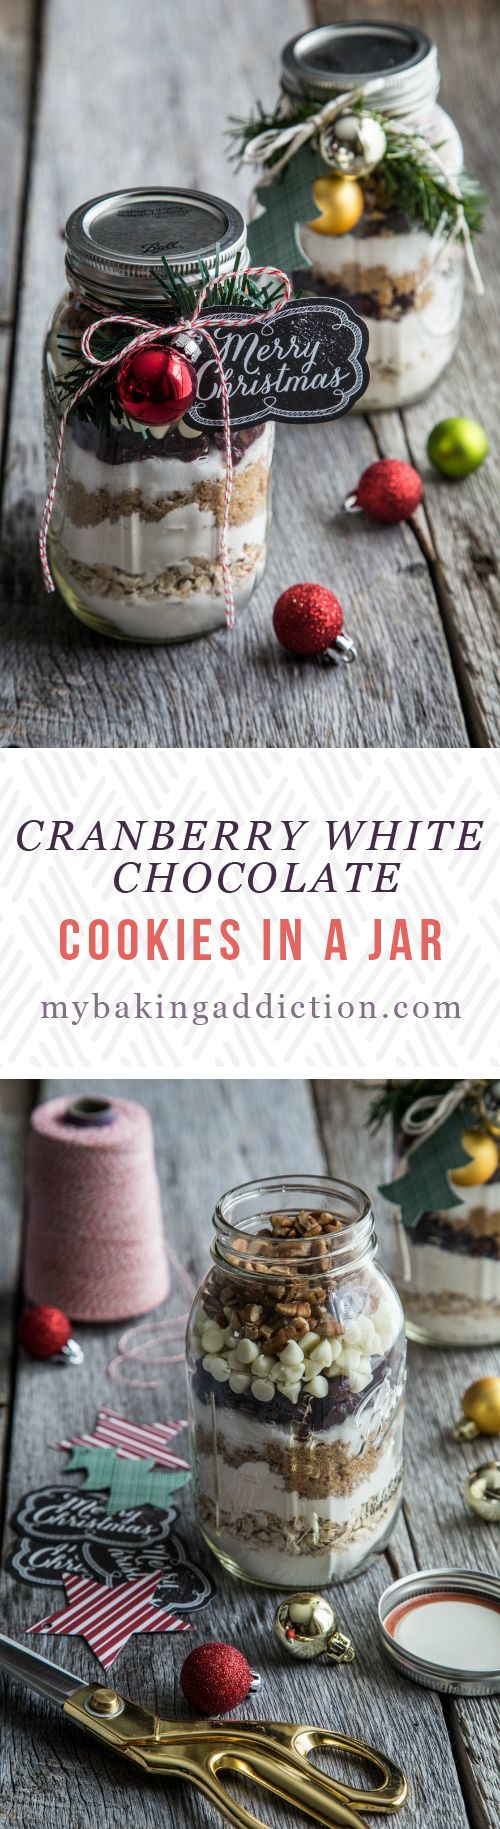 Cranberry White Chocolate Cookies in a Jar from My Baking Addiction: